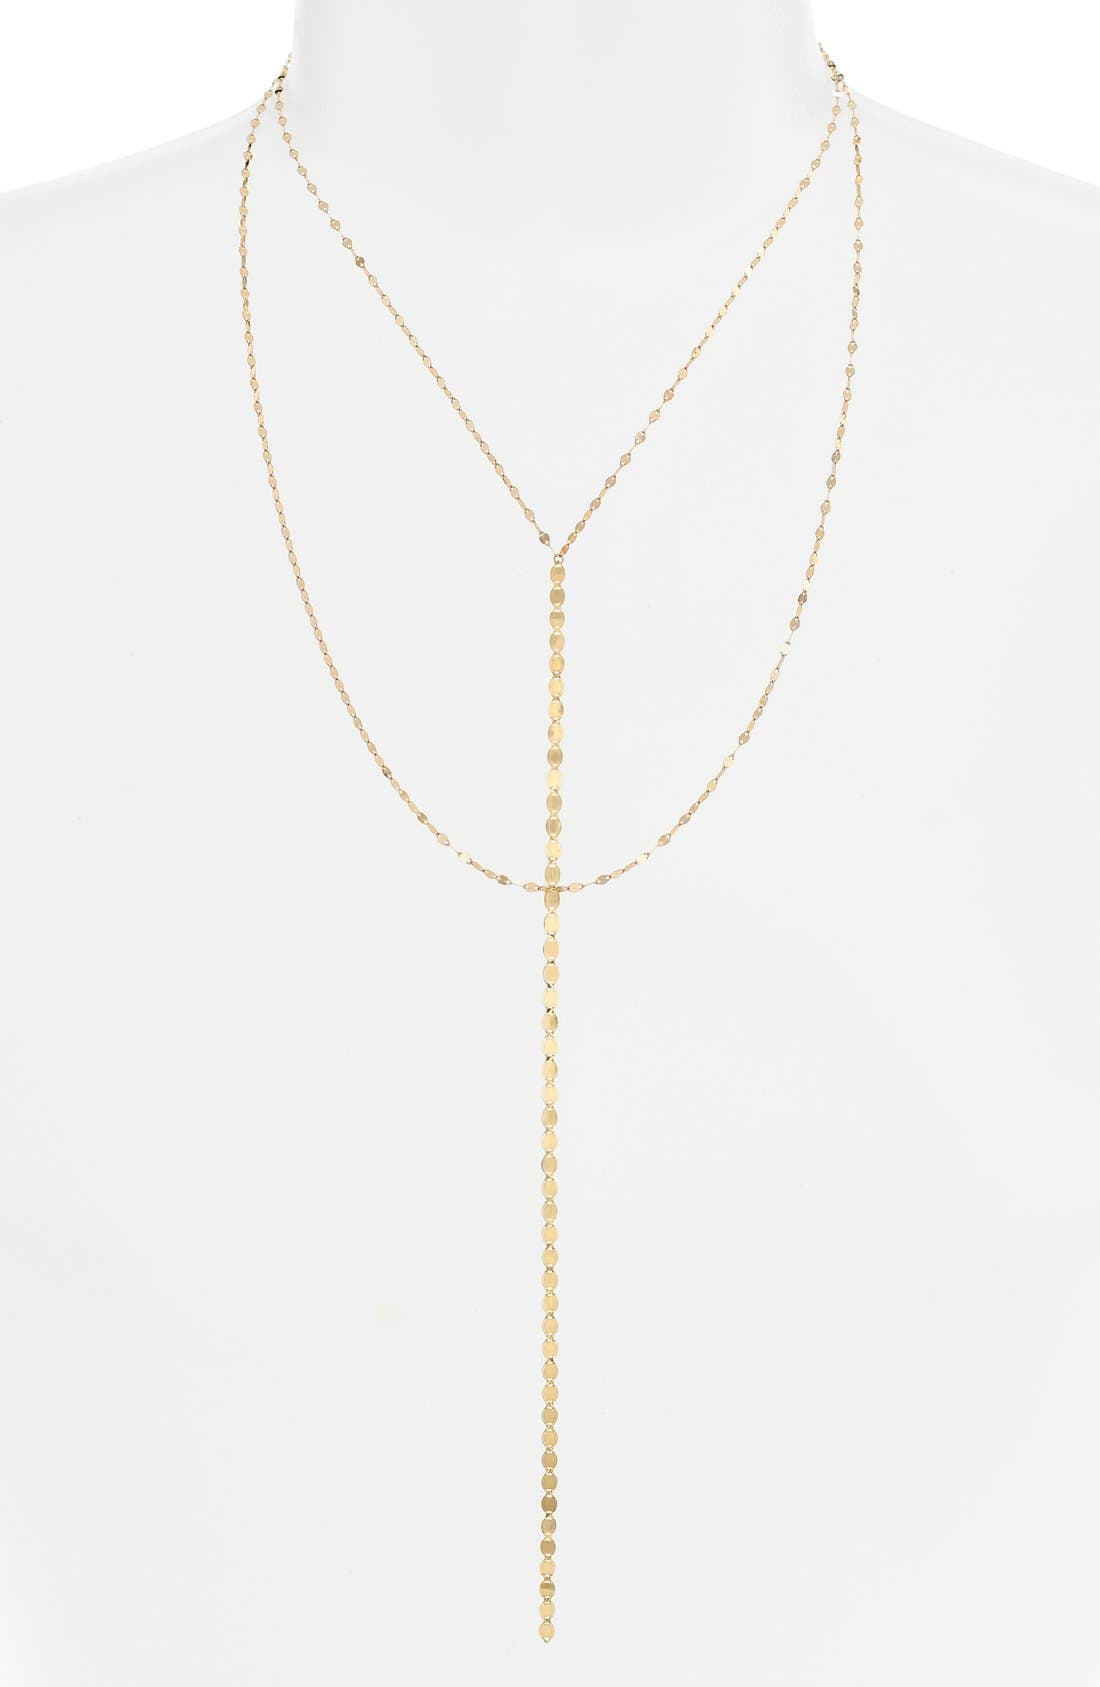 LANA JEWELRY 'Nude Blake' Multistrand Drop Necklace